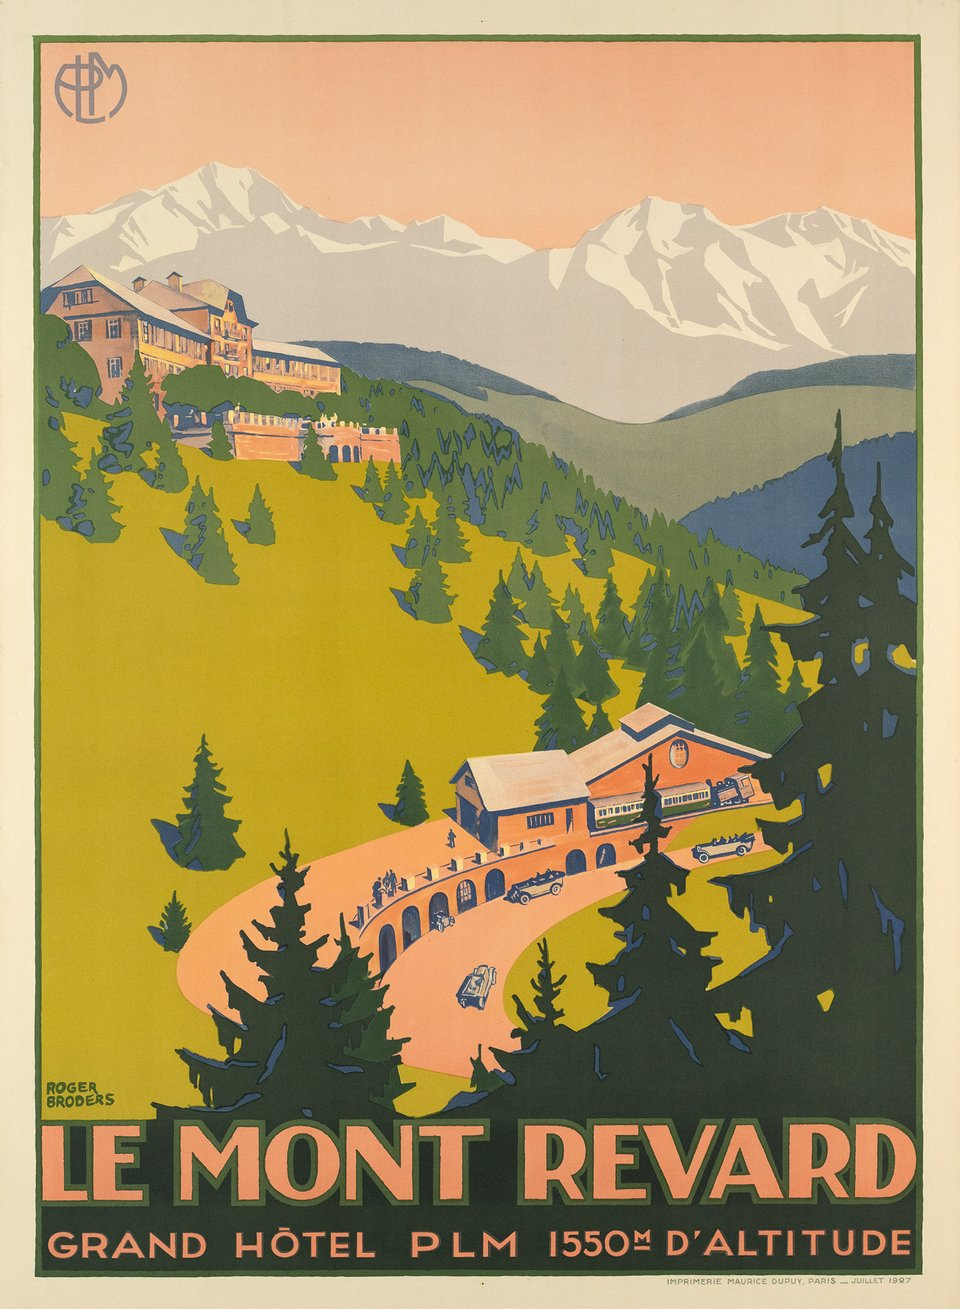 Le Mont Revard – Affiche ancienne – Roger BRODERS – 1930